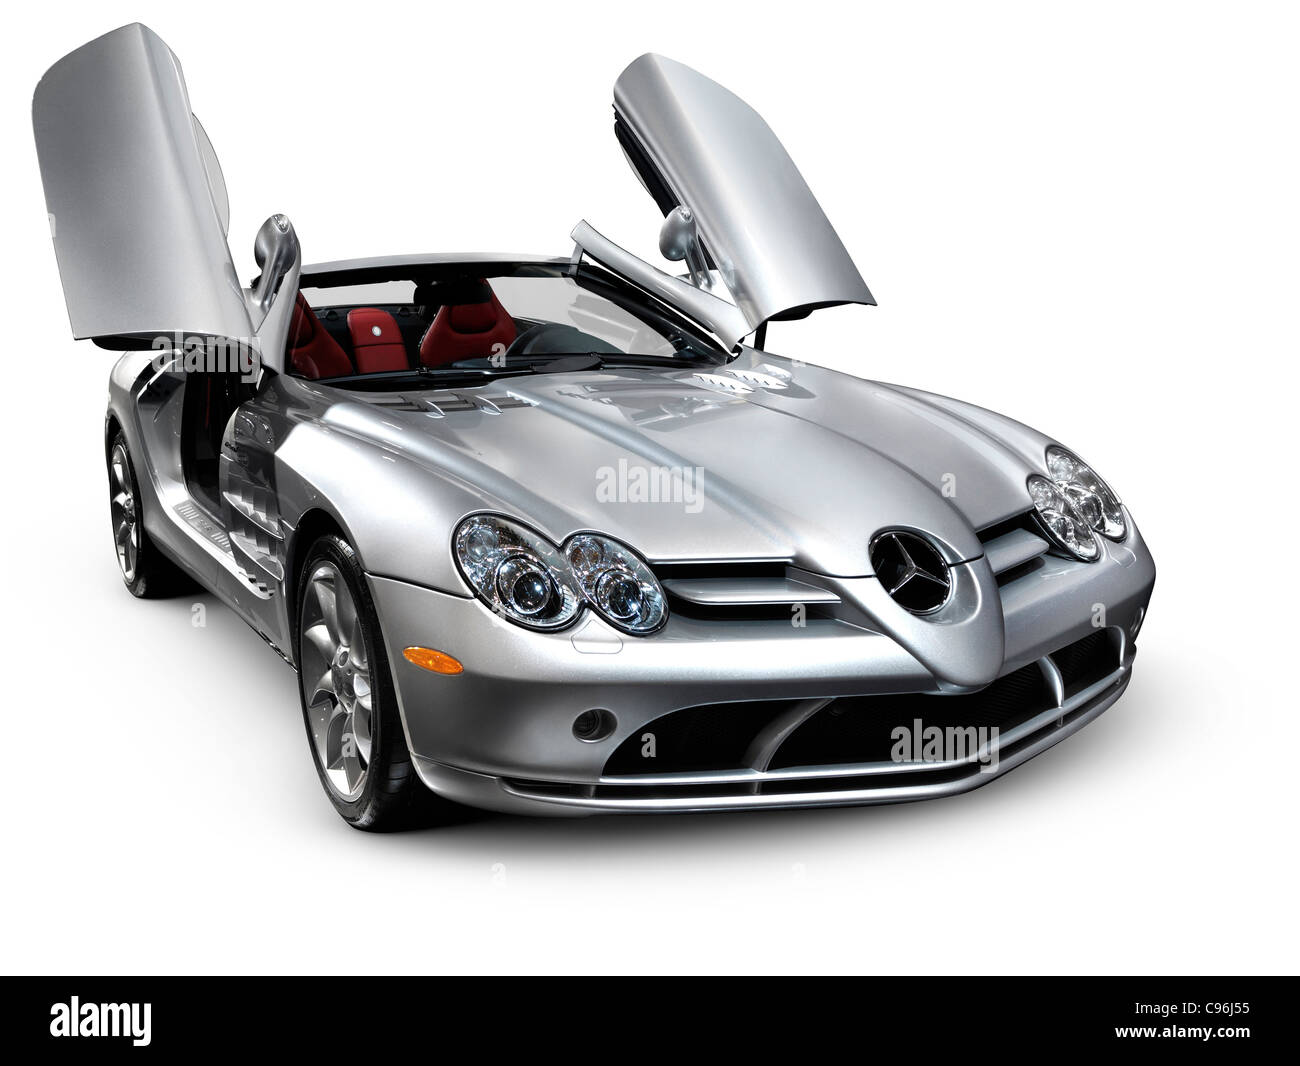 Mercedes Benz Slr Mclaren Roadster Anglo German Sports Car